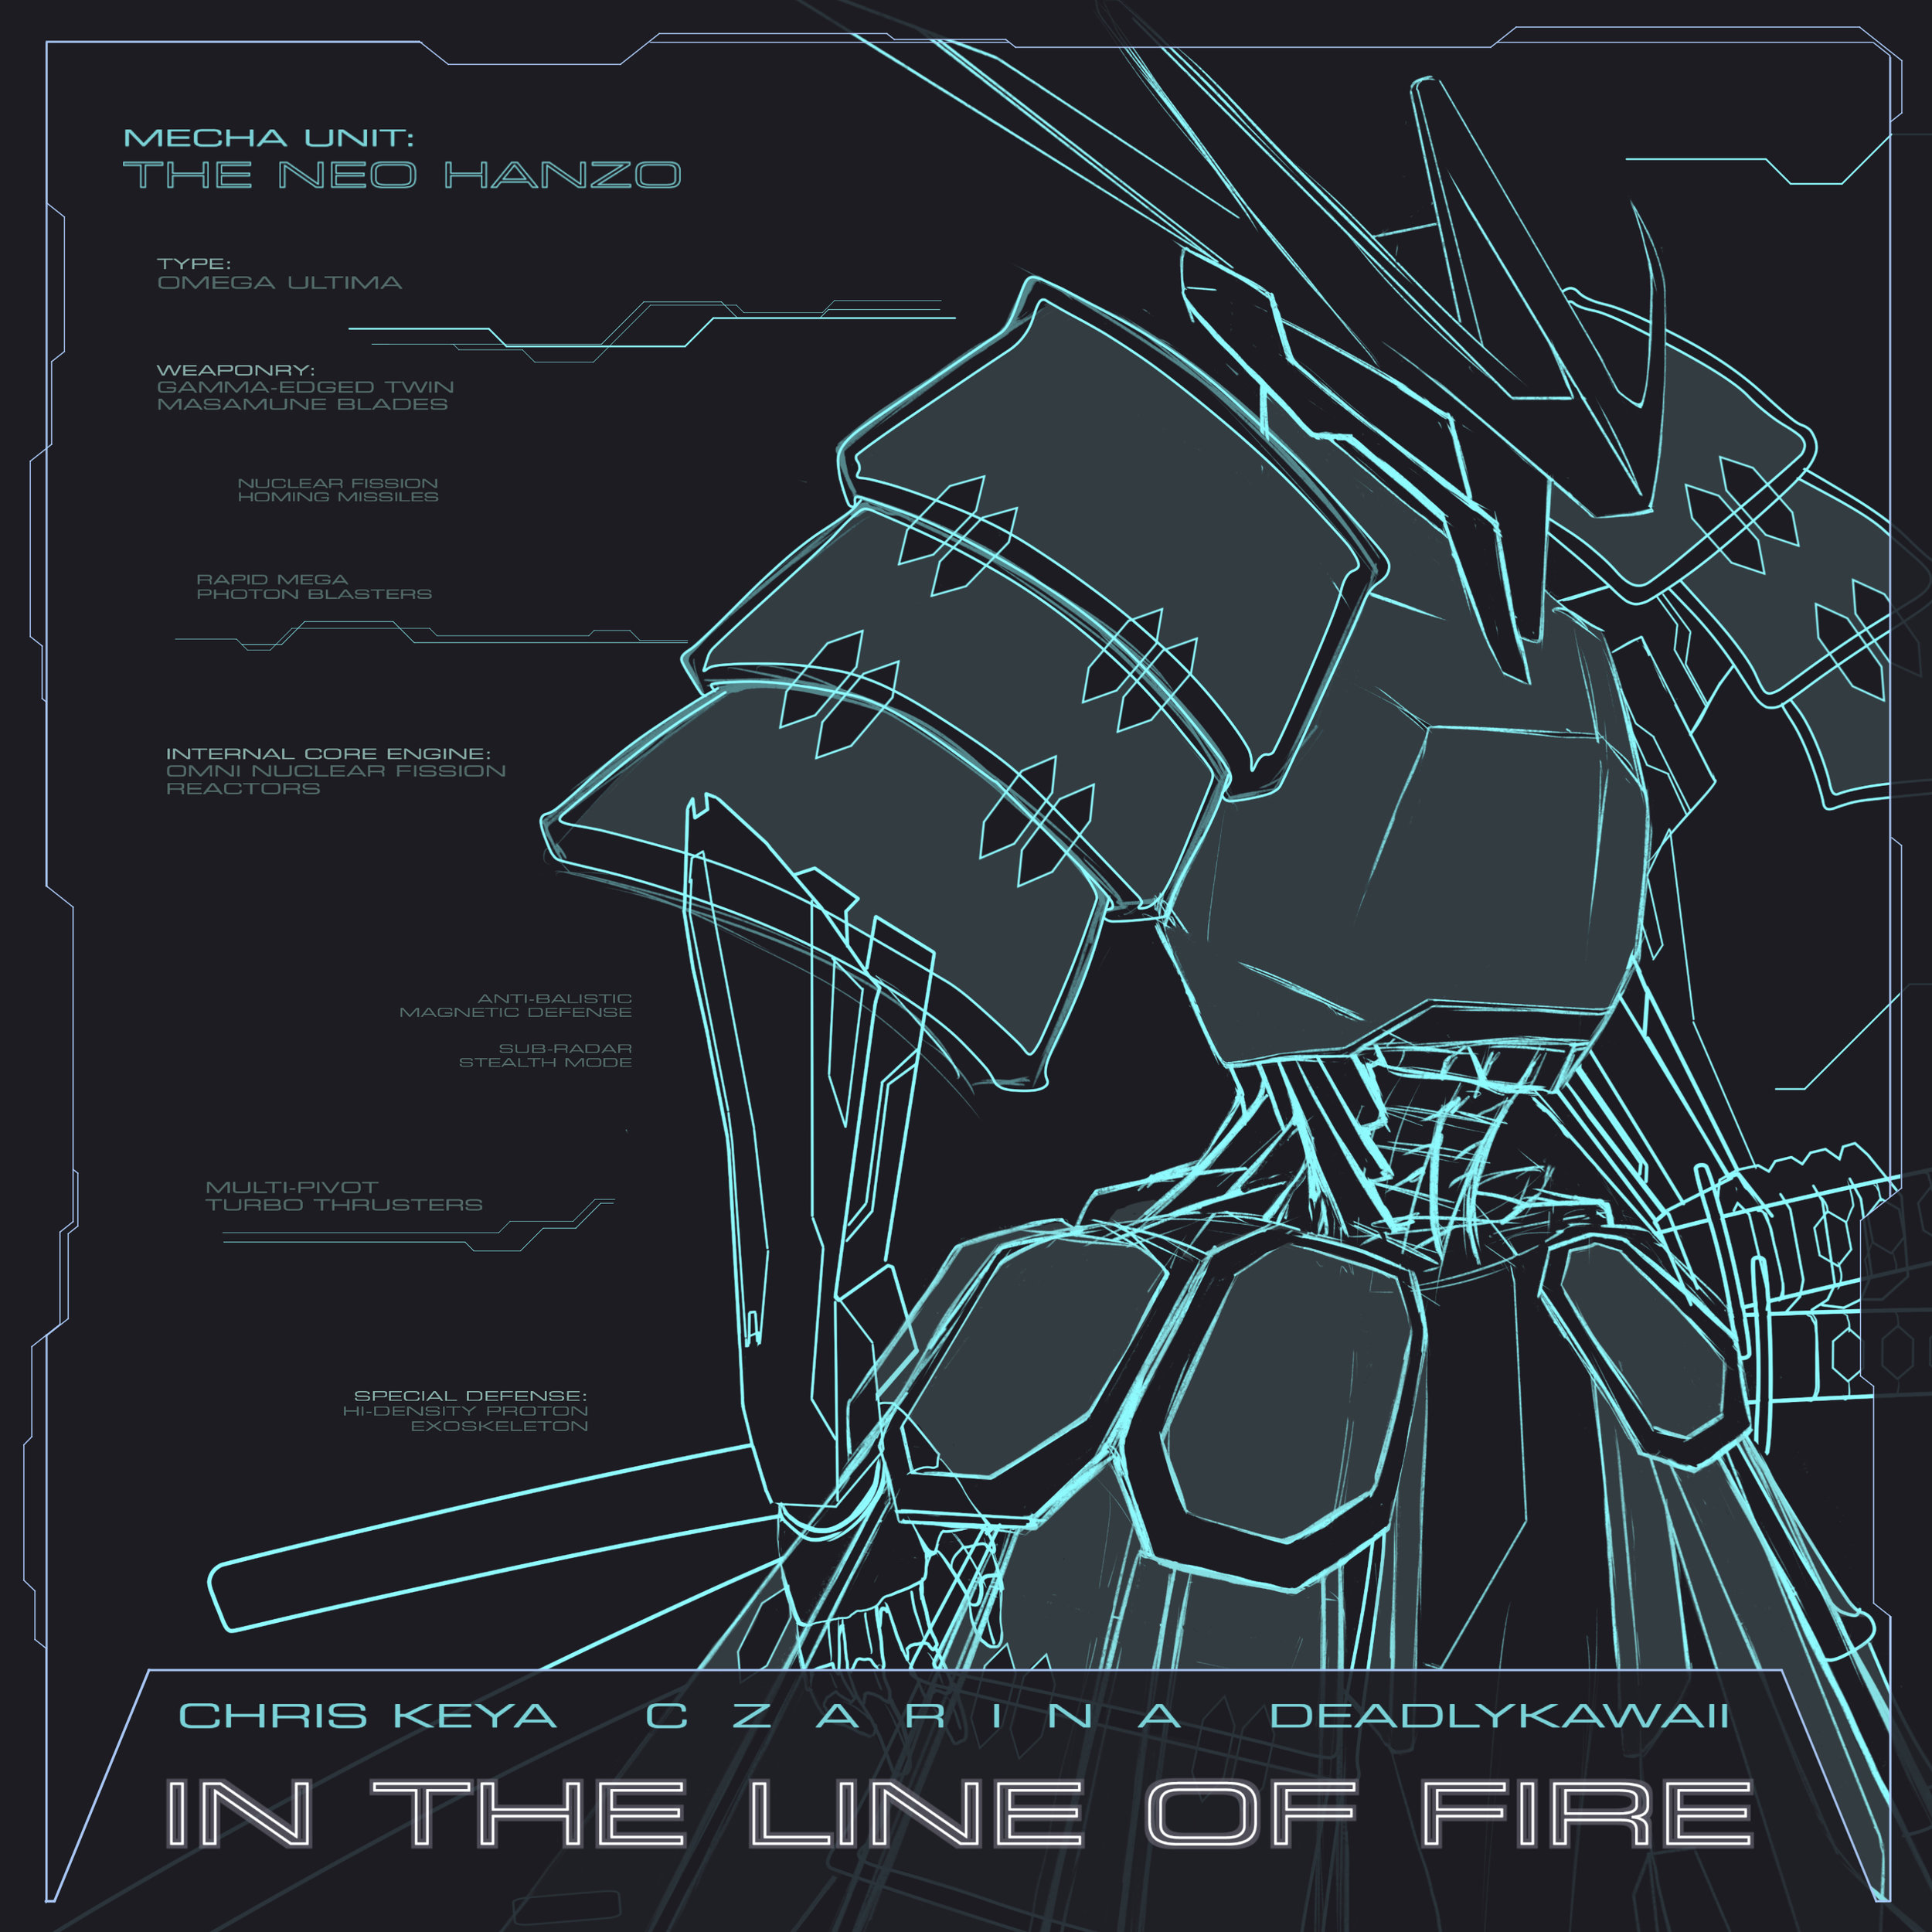 In the line of fire album cover v2.jpg